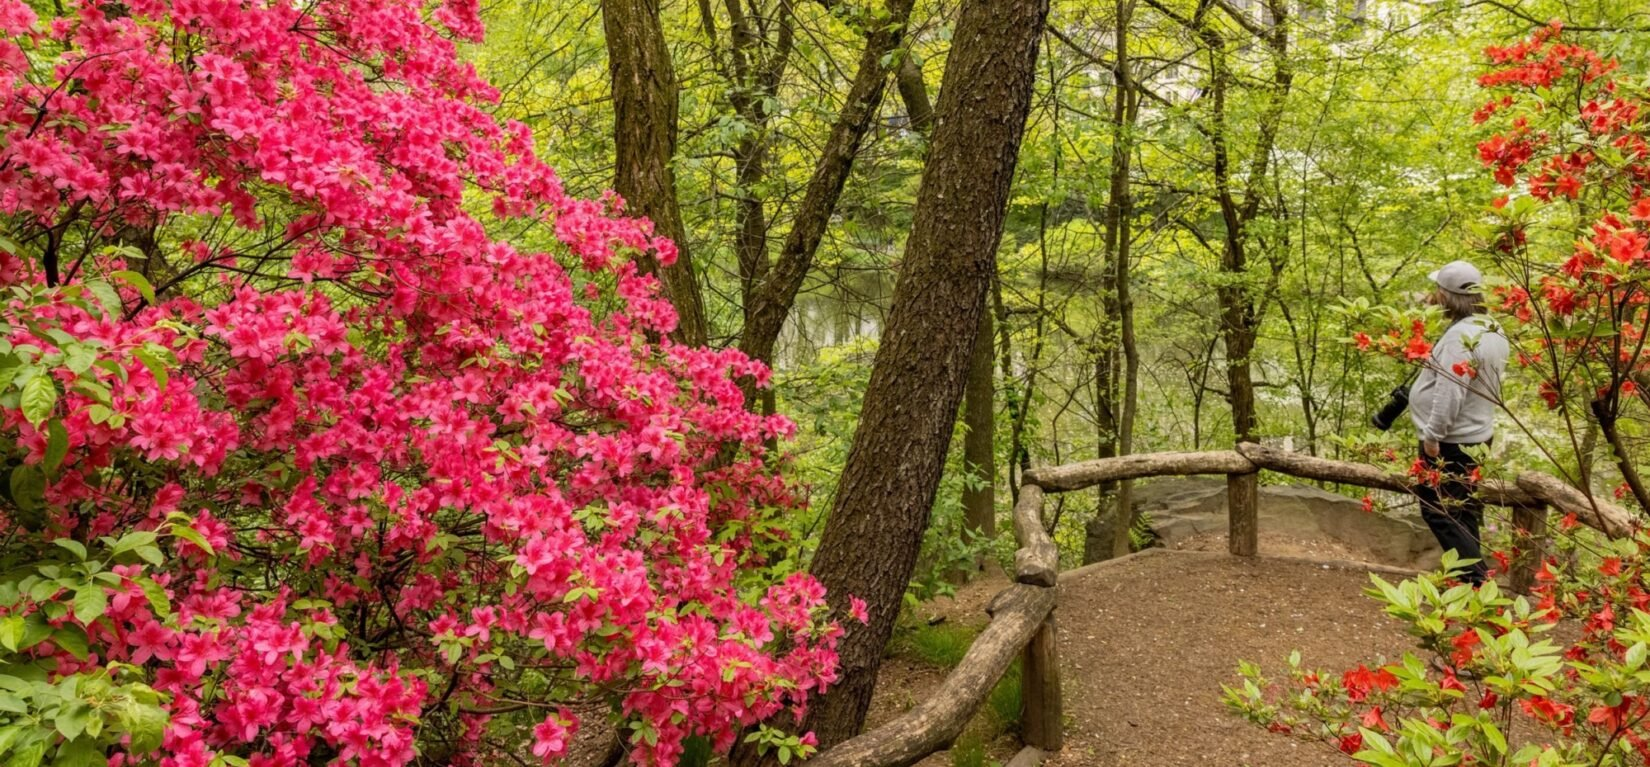 Brilliant red blossoms on either side of the rustic path that leads through the sanctuary